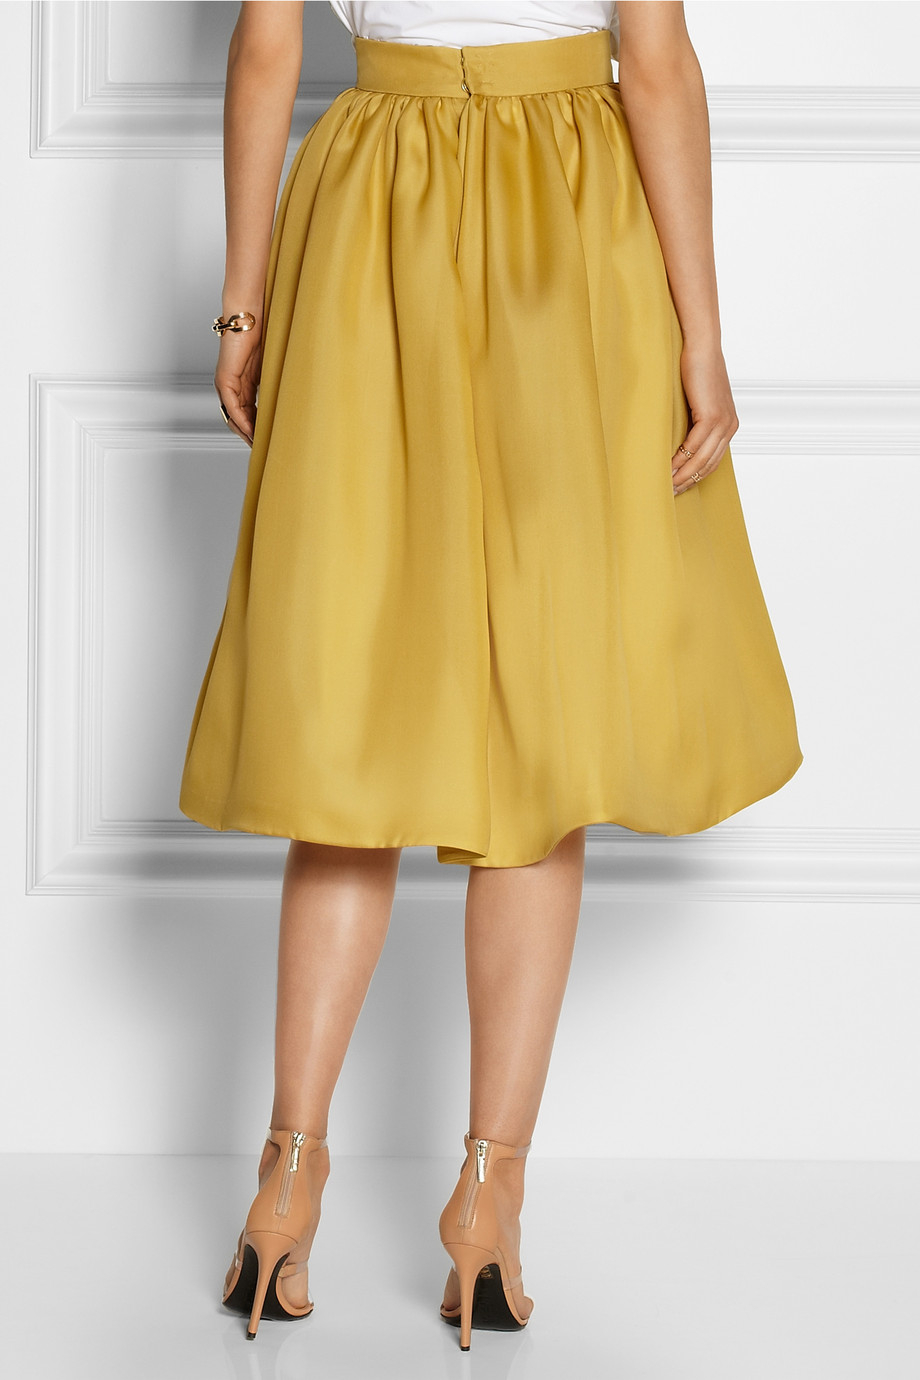 Delpozo Silk-Blend Gazar Midi Skirt in Yellow | Lyst